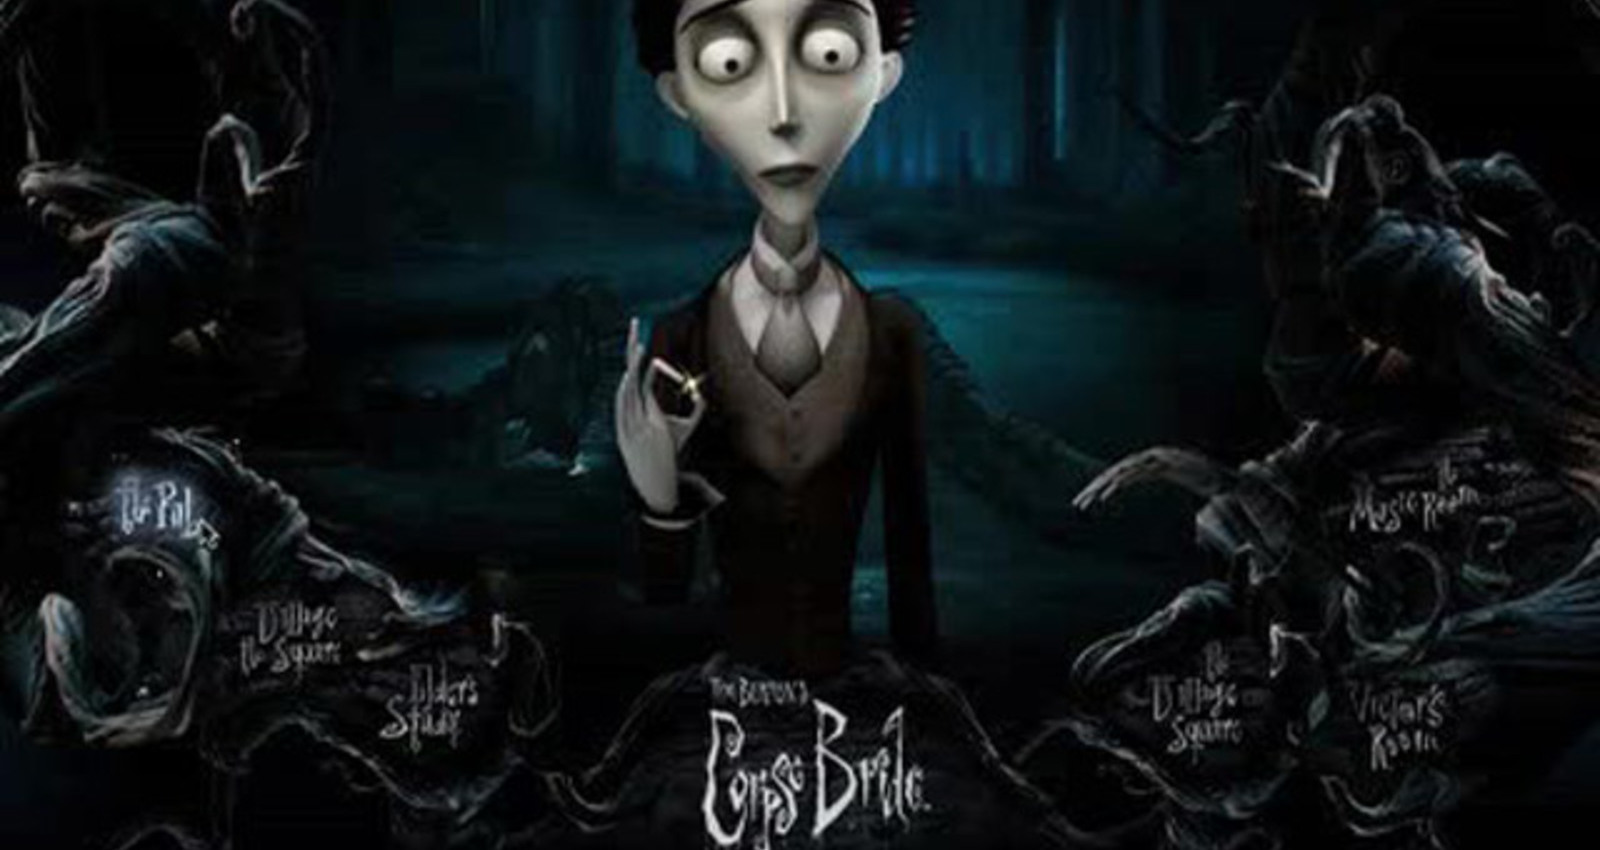 The Corpse Bride Official Movie Website